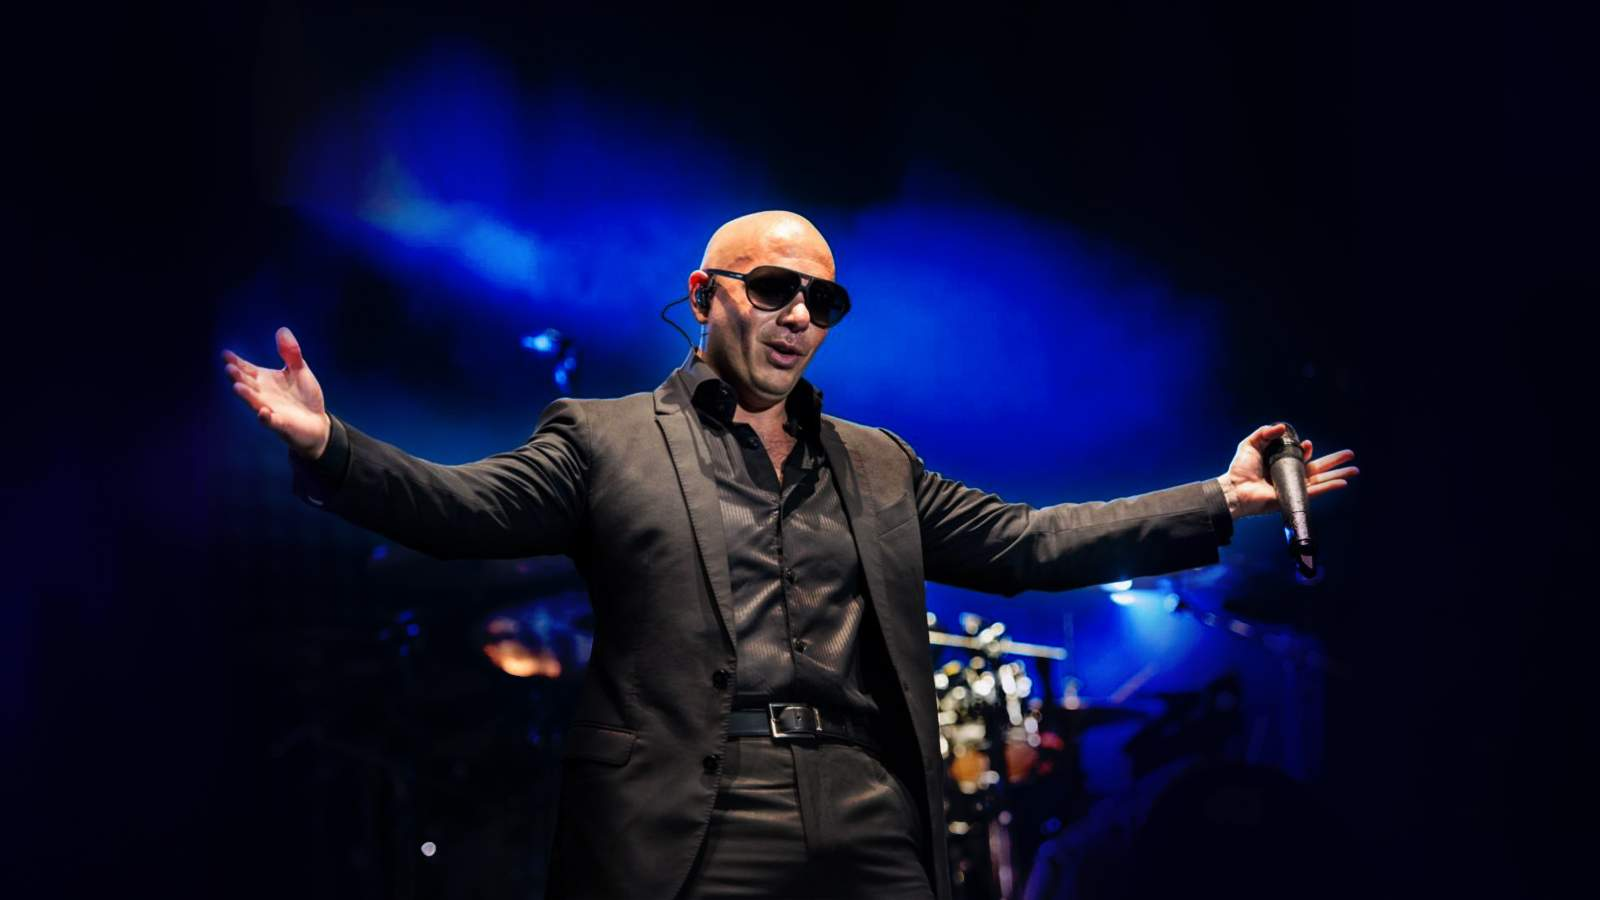 Pitbull (Rescheduled from 3/26/2020, 6/28/2020, 11/12/2020, 3/25/2021)